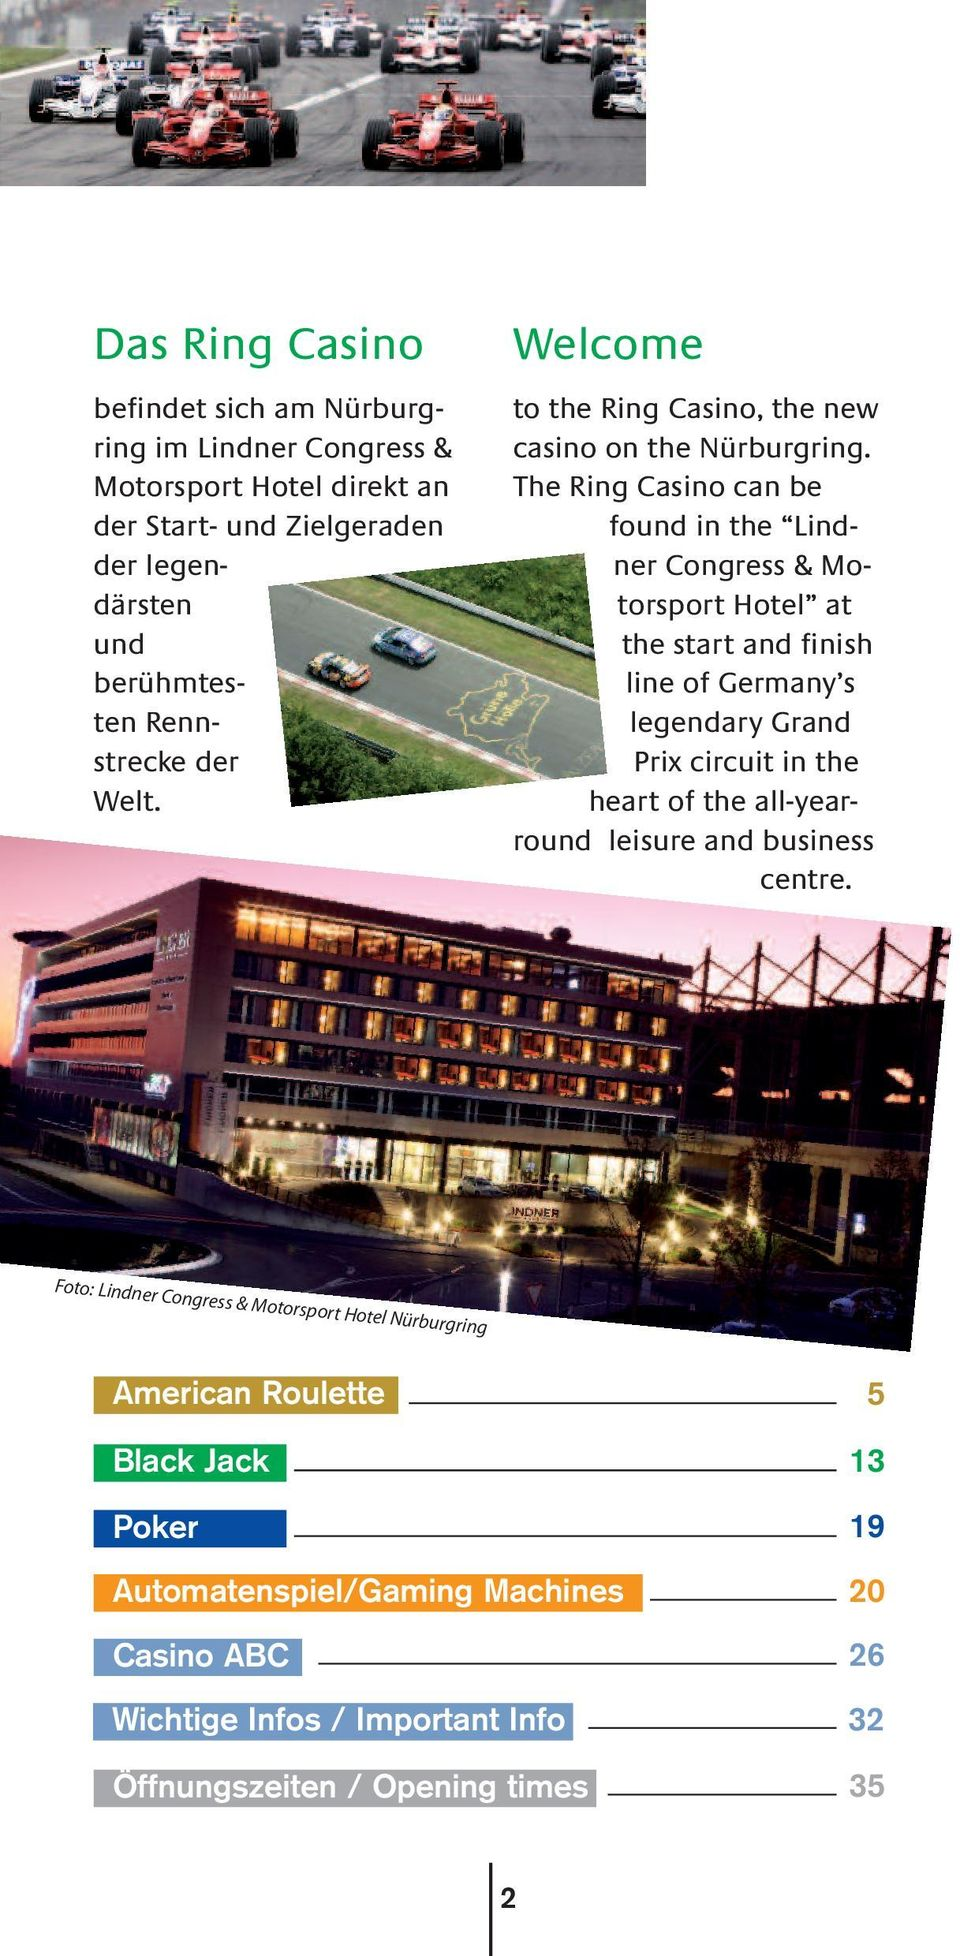 The Ring Casino can be found in the Lindner Congress & Motorsport Hotel at the start and finish line of Germany s legendary Grand Prix circuit in the heart of the